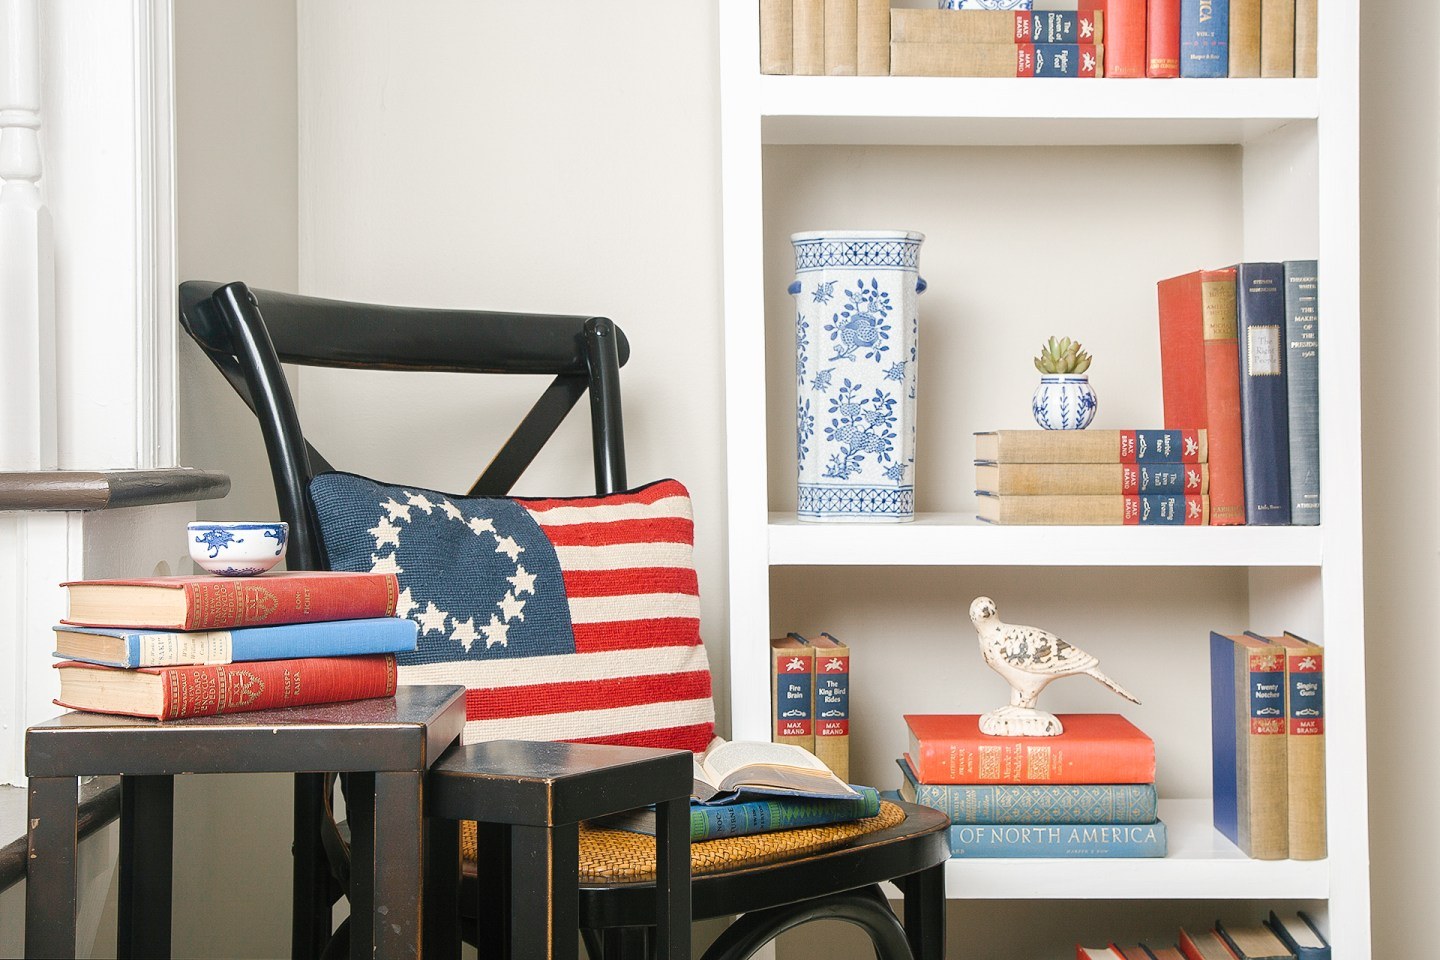 12 Tips for Using Books as Decor from Booth and Williams